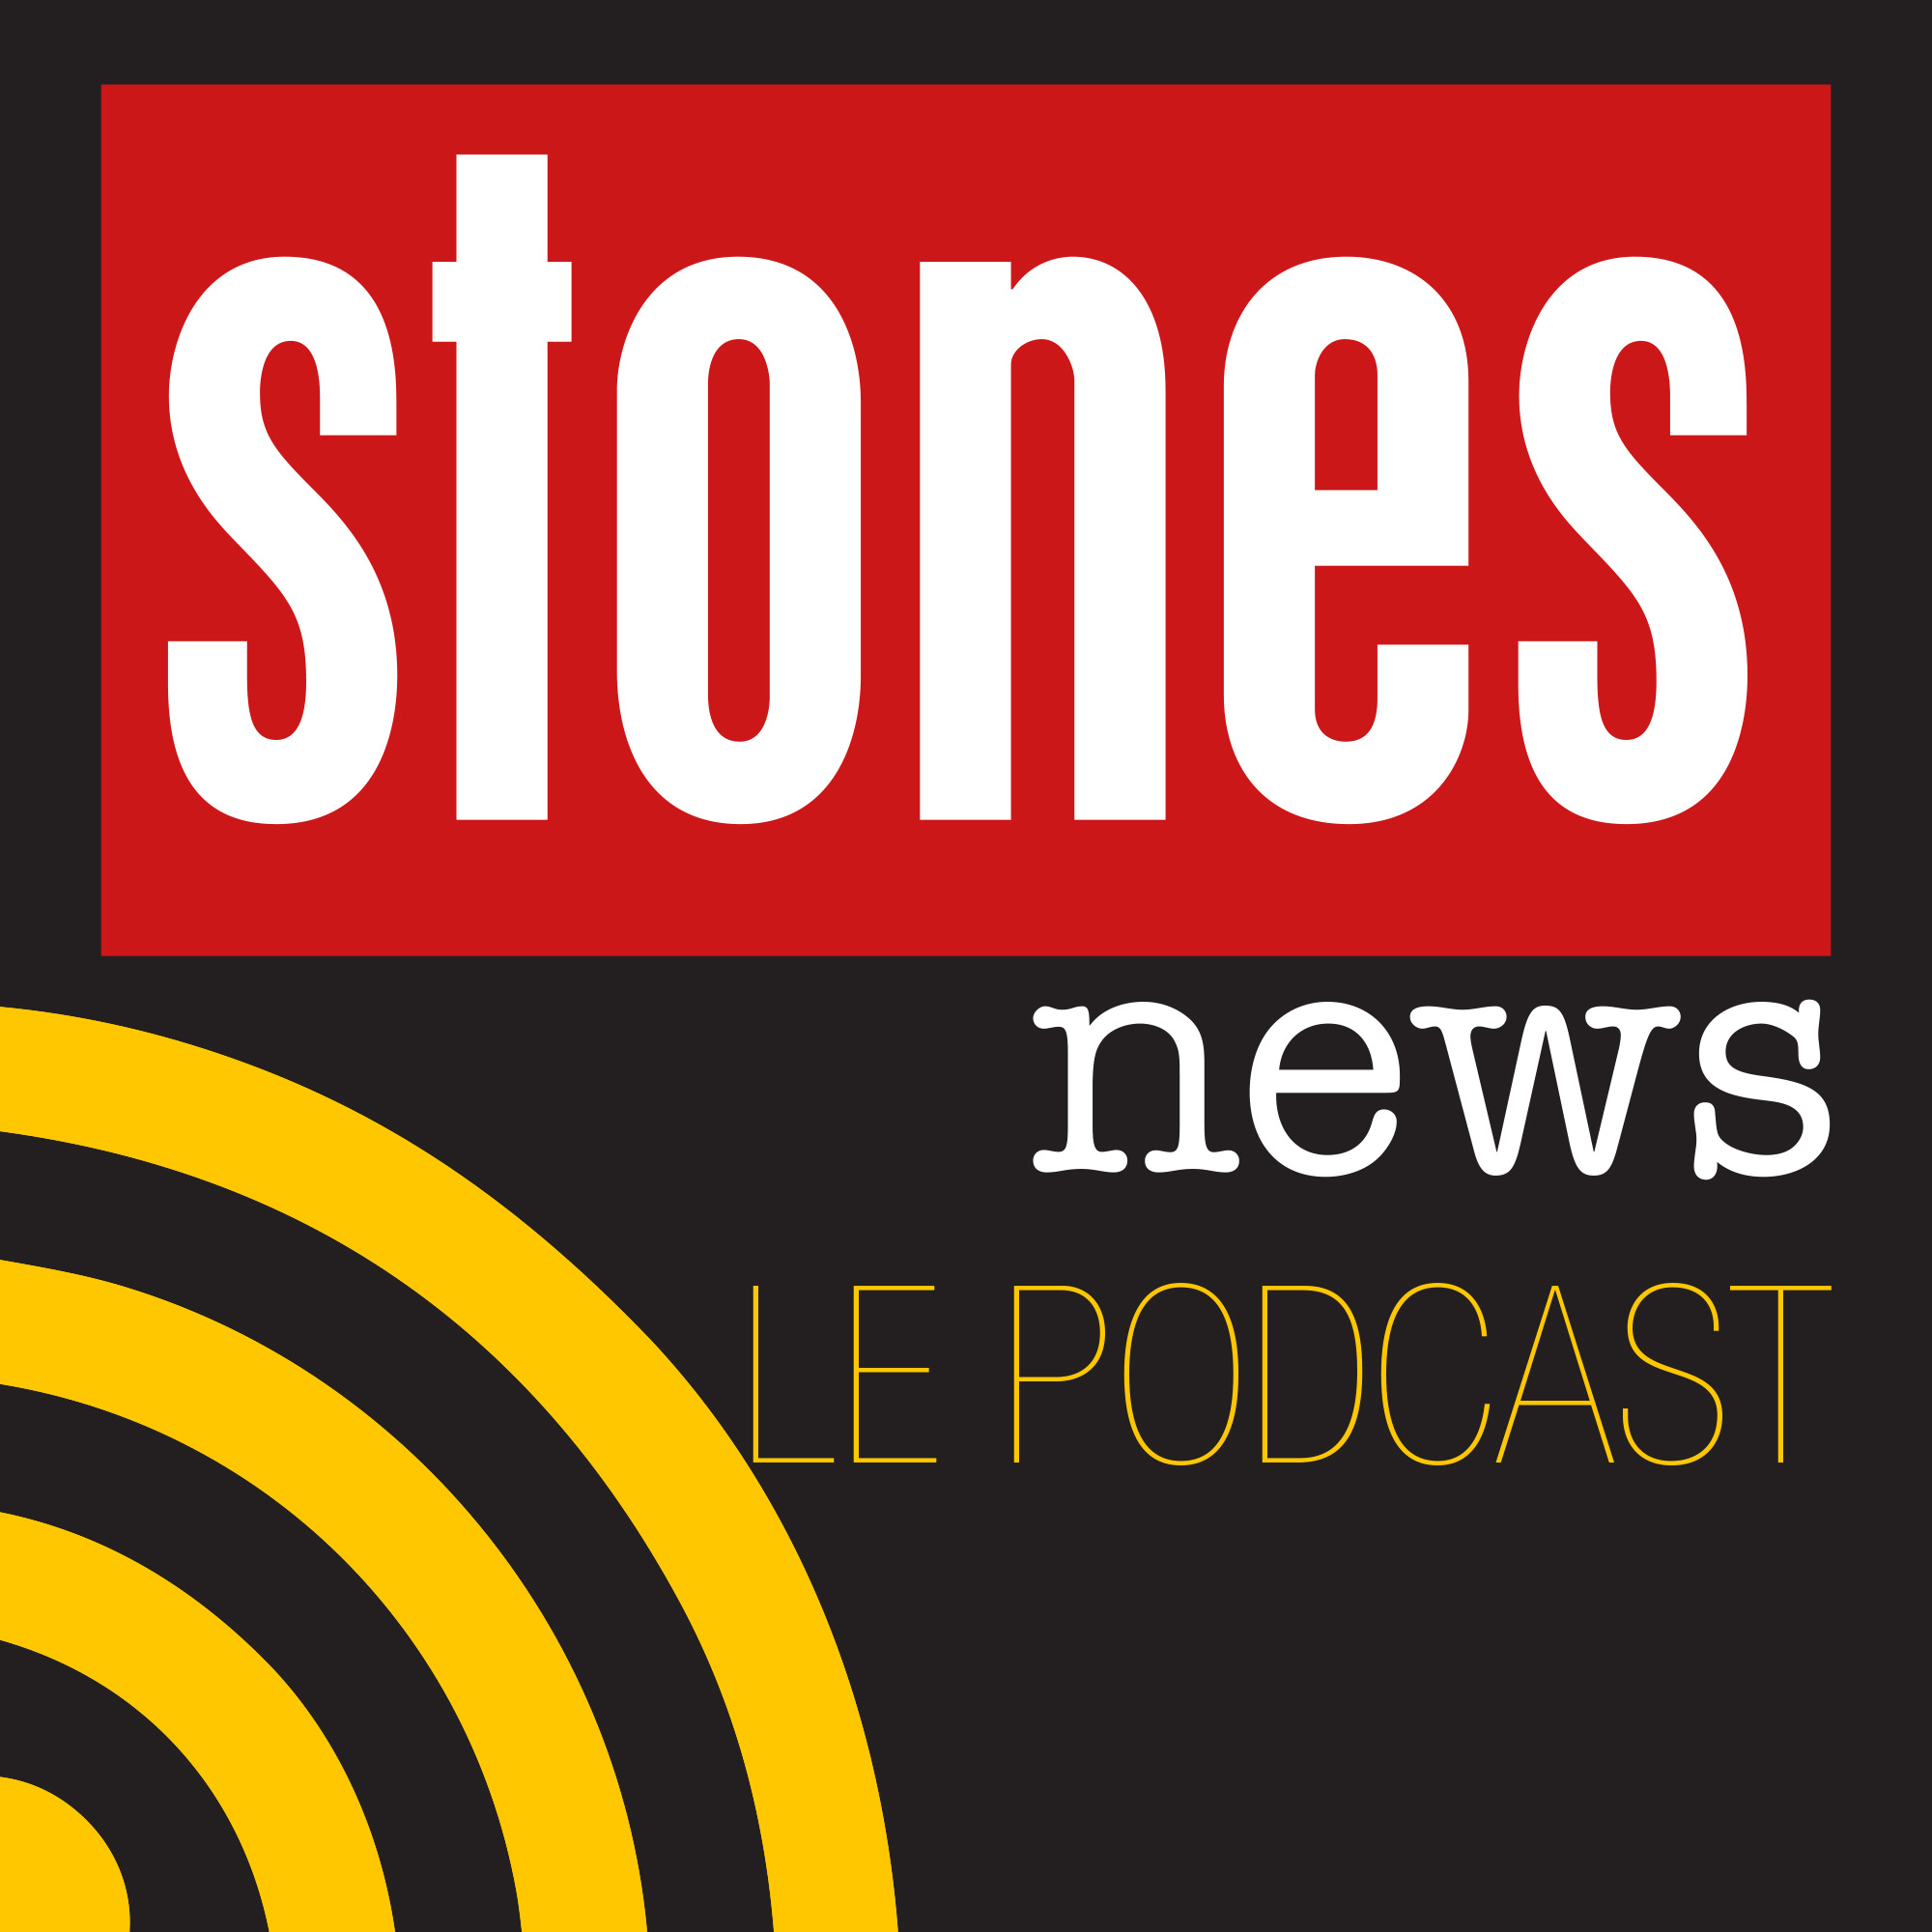 Stones News, le Podcast